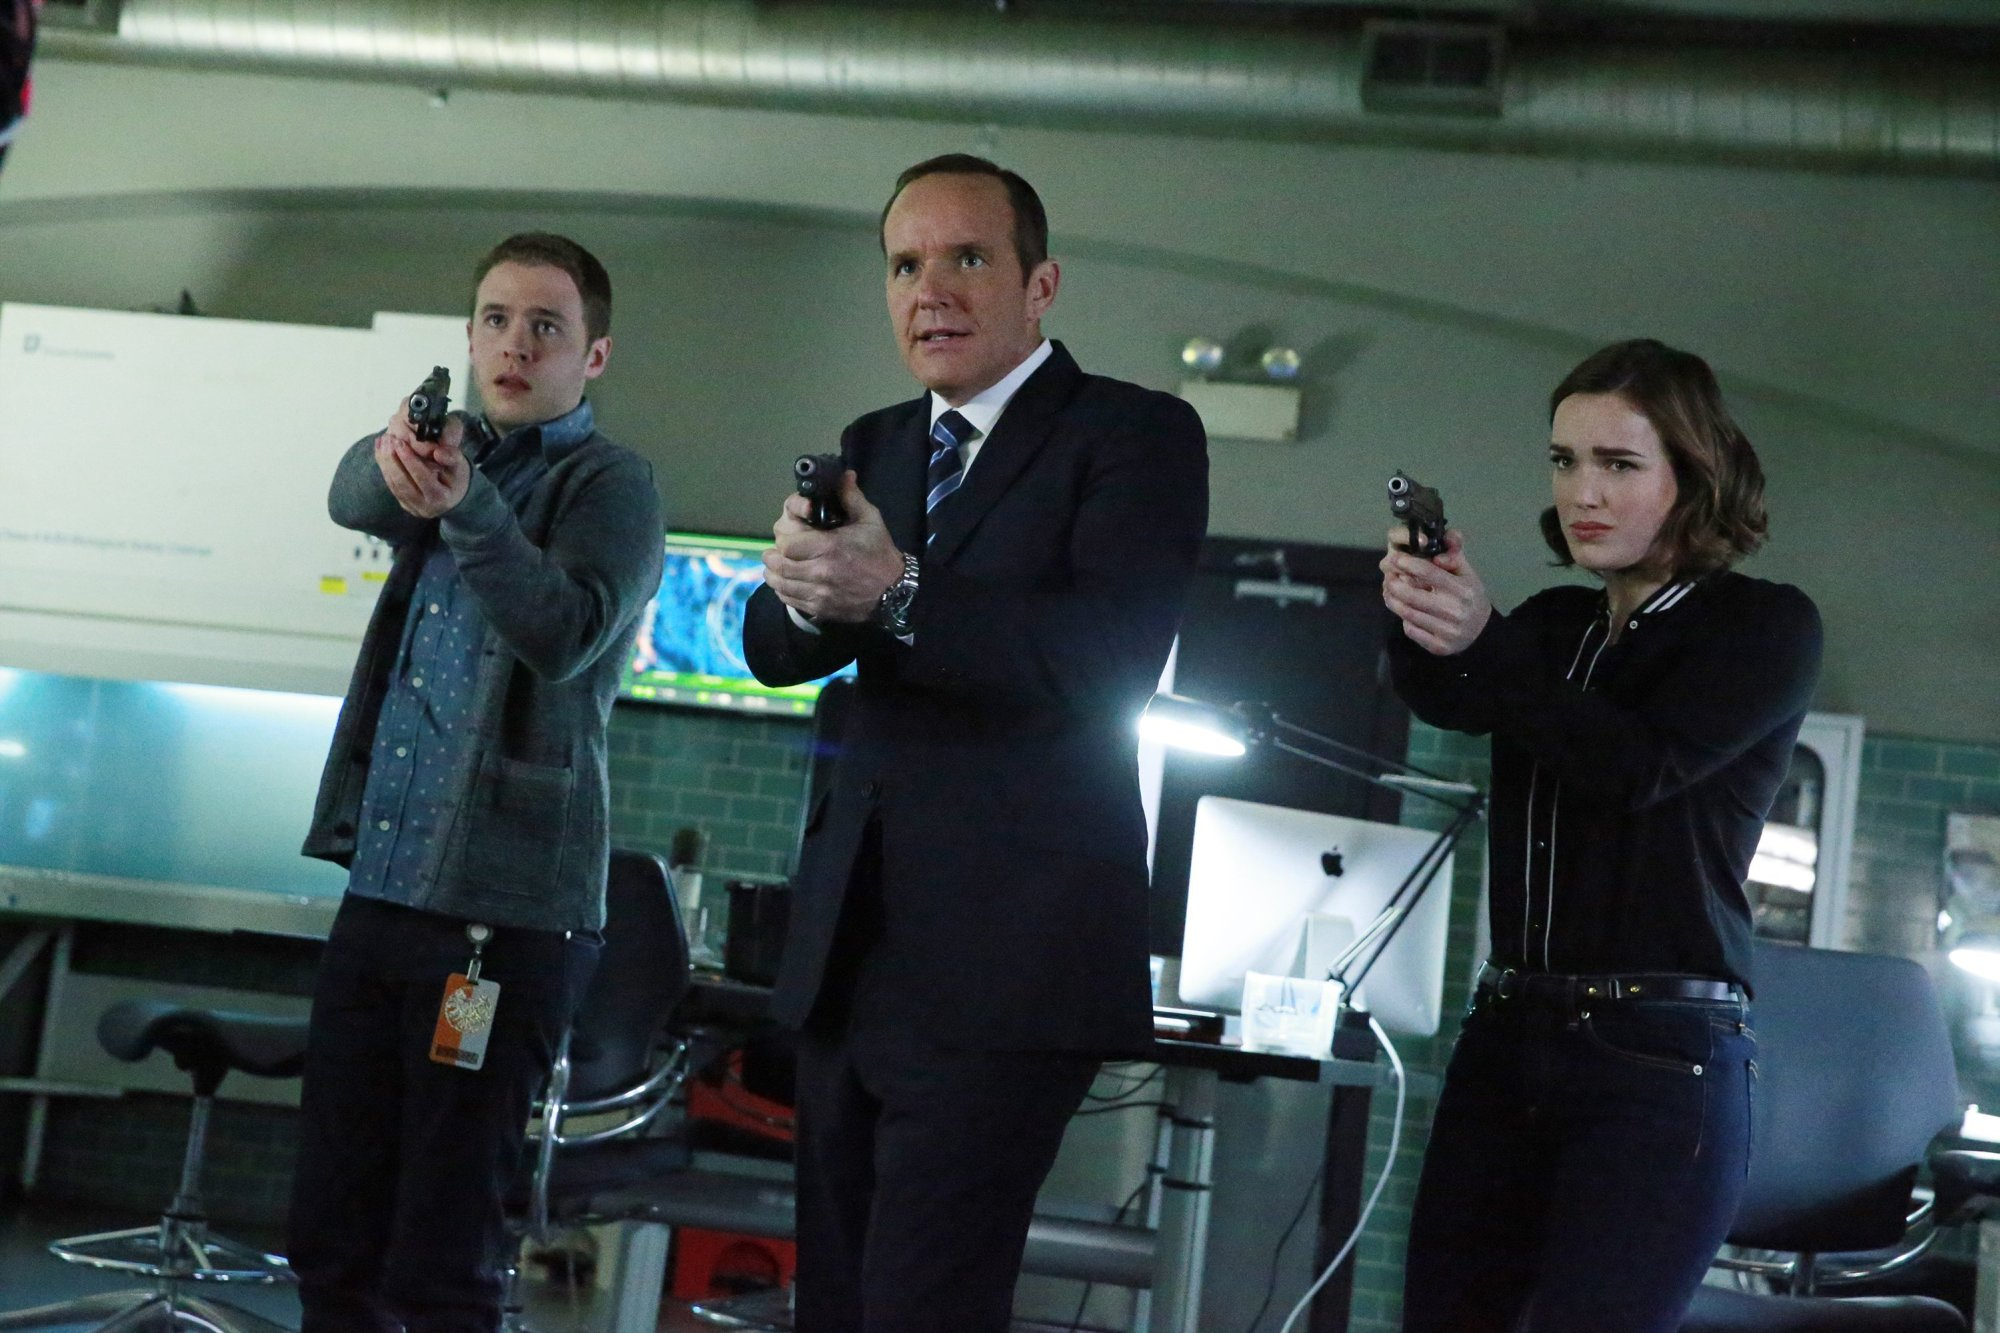 Marvel's Agents of S.H.I.E.L.D. - 02x22 - S.O.S.